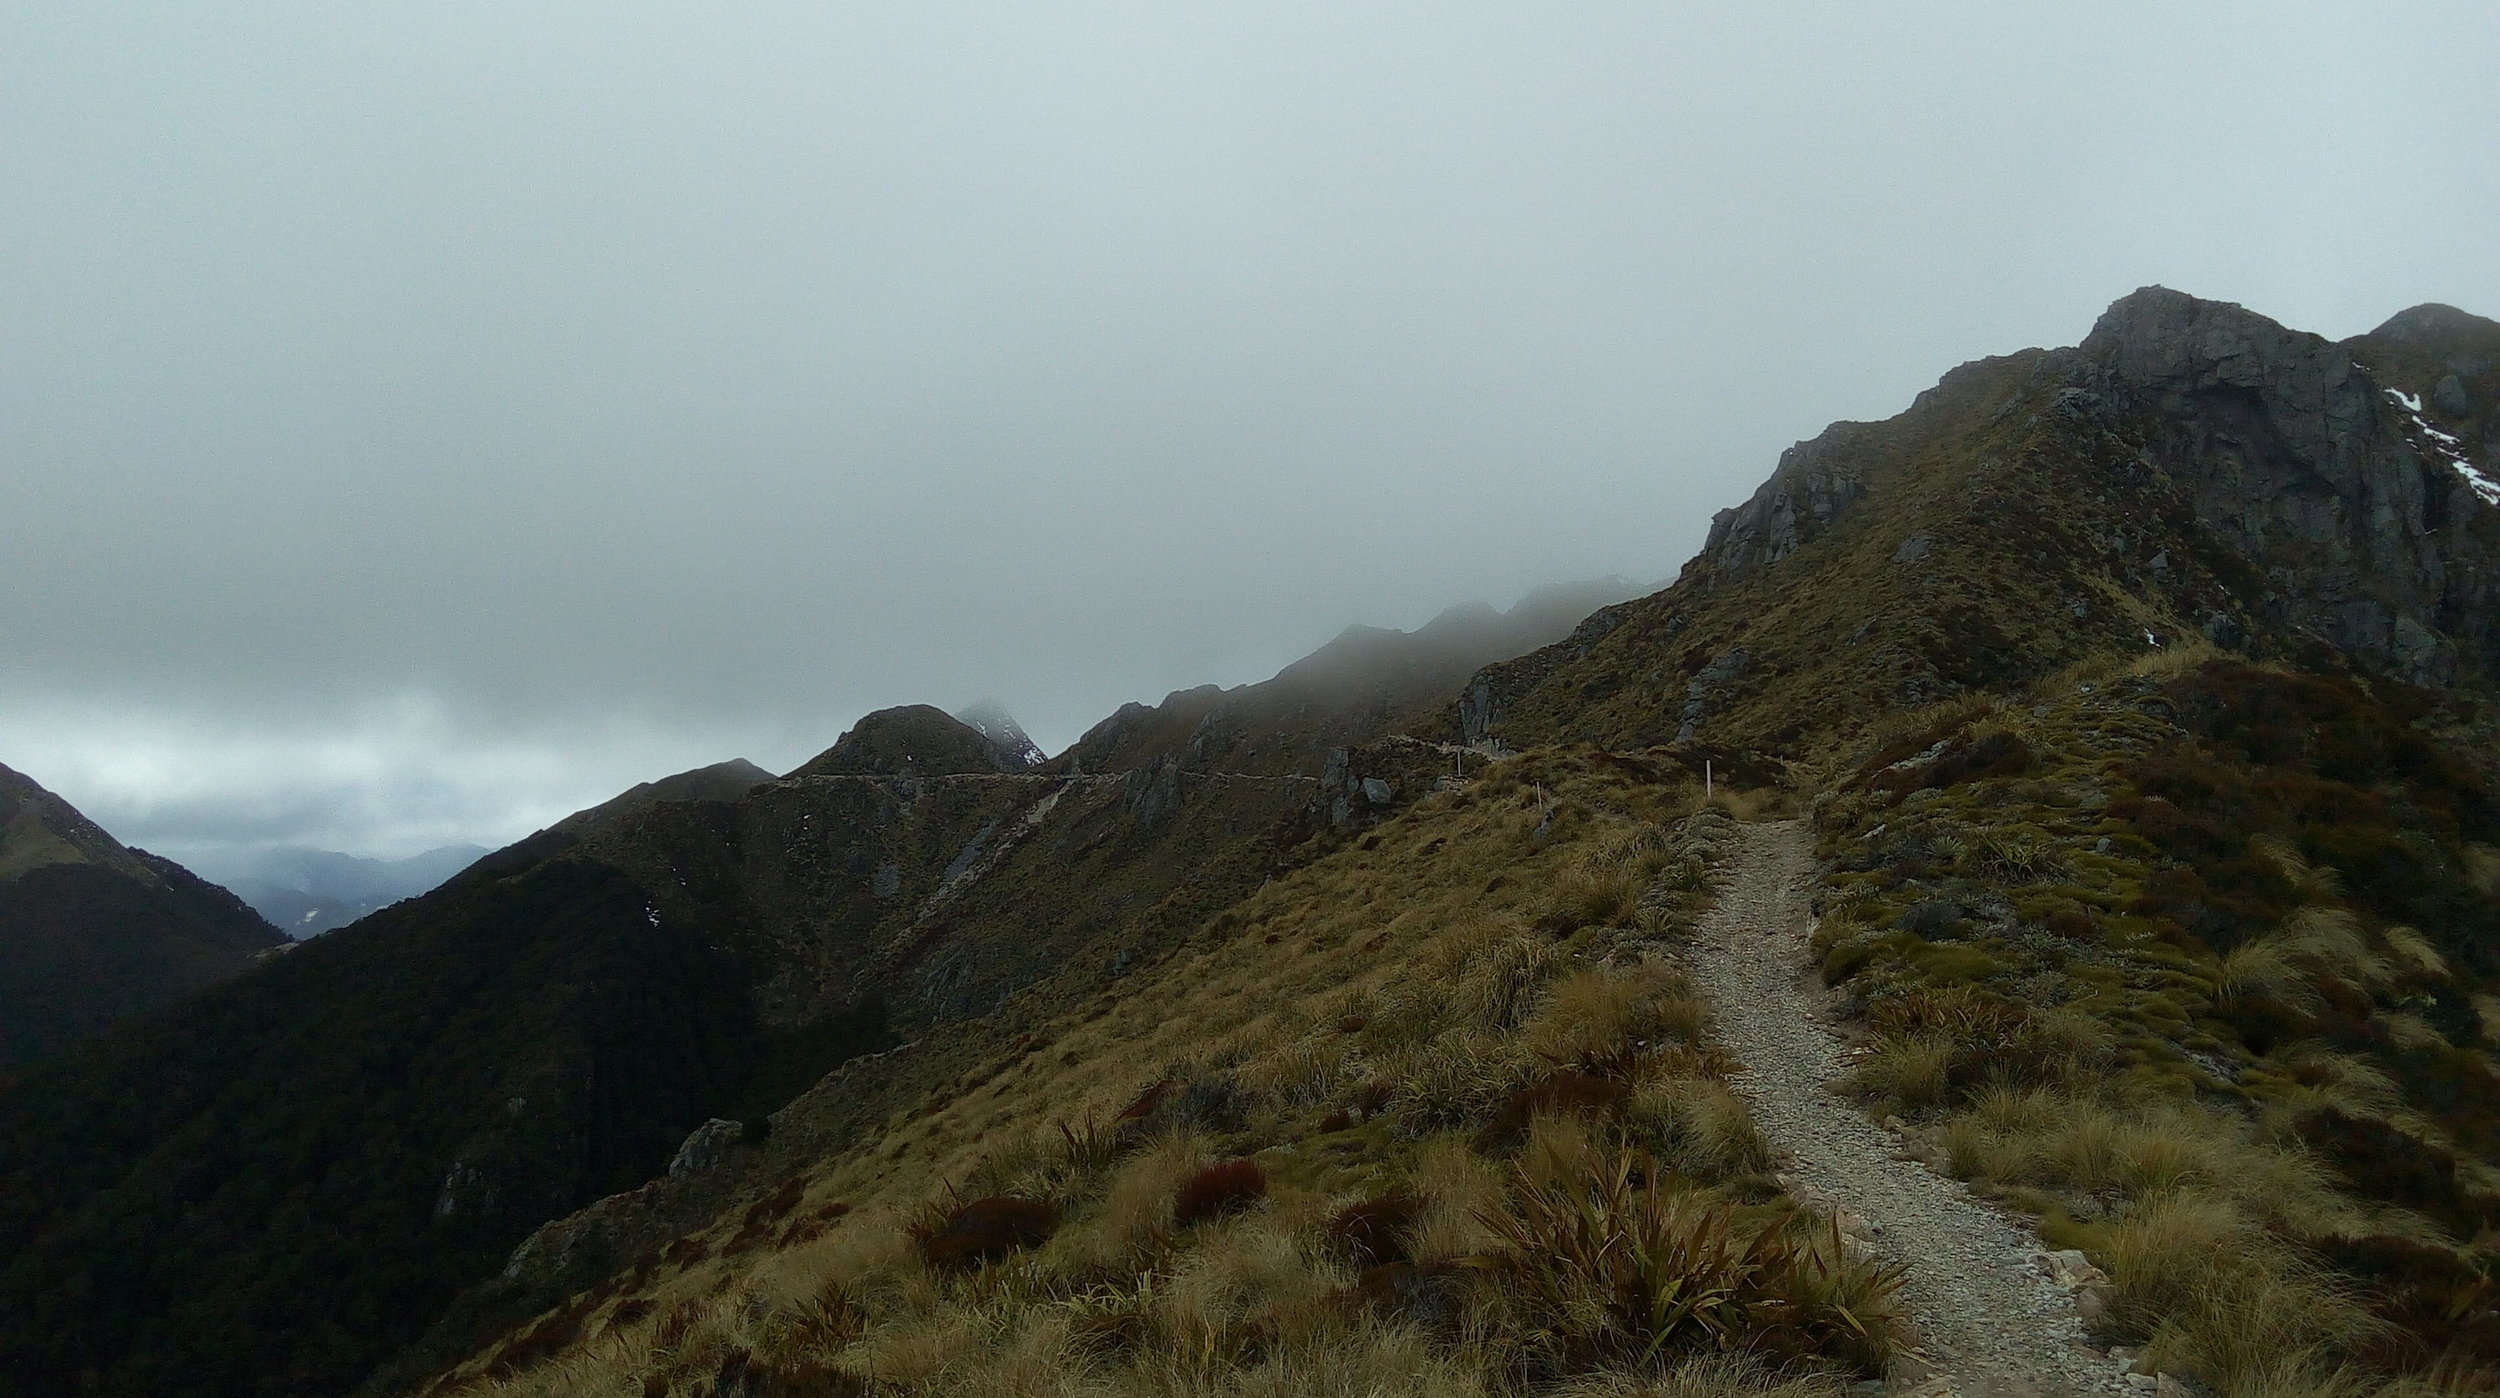 The trail along the tops.